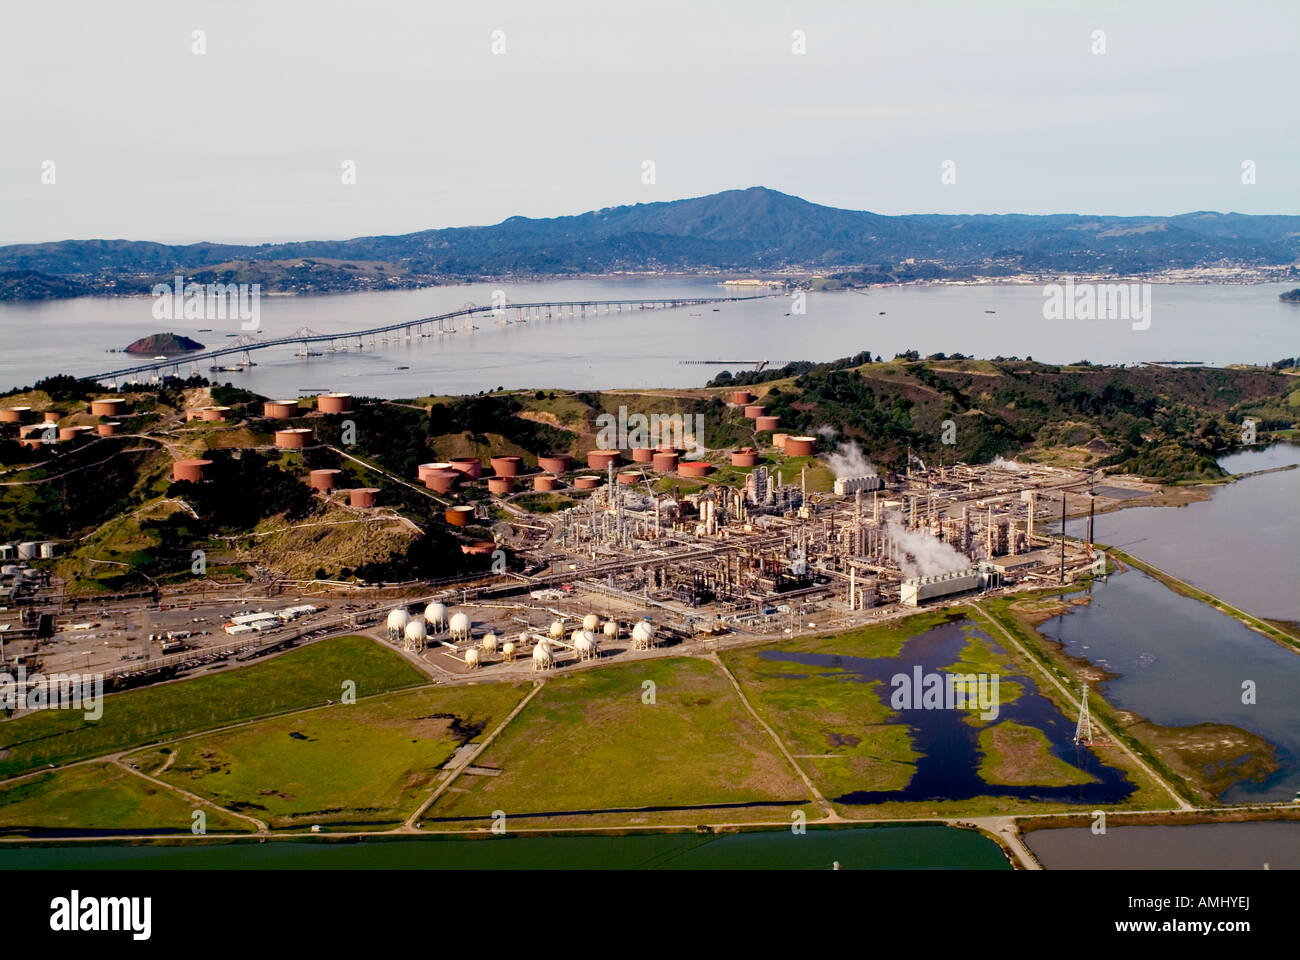 aerial above Chevron Refinery Richmond California Mount Tamalpais in background San Francisco bay Stock Photo